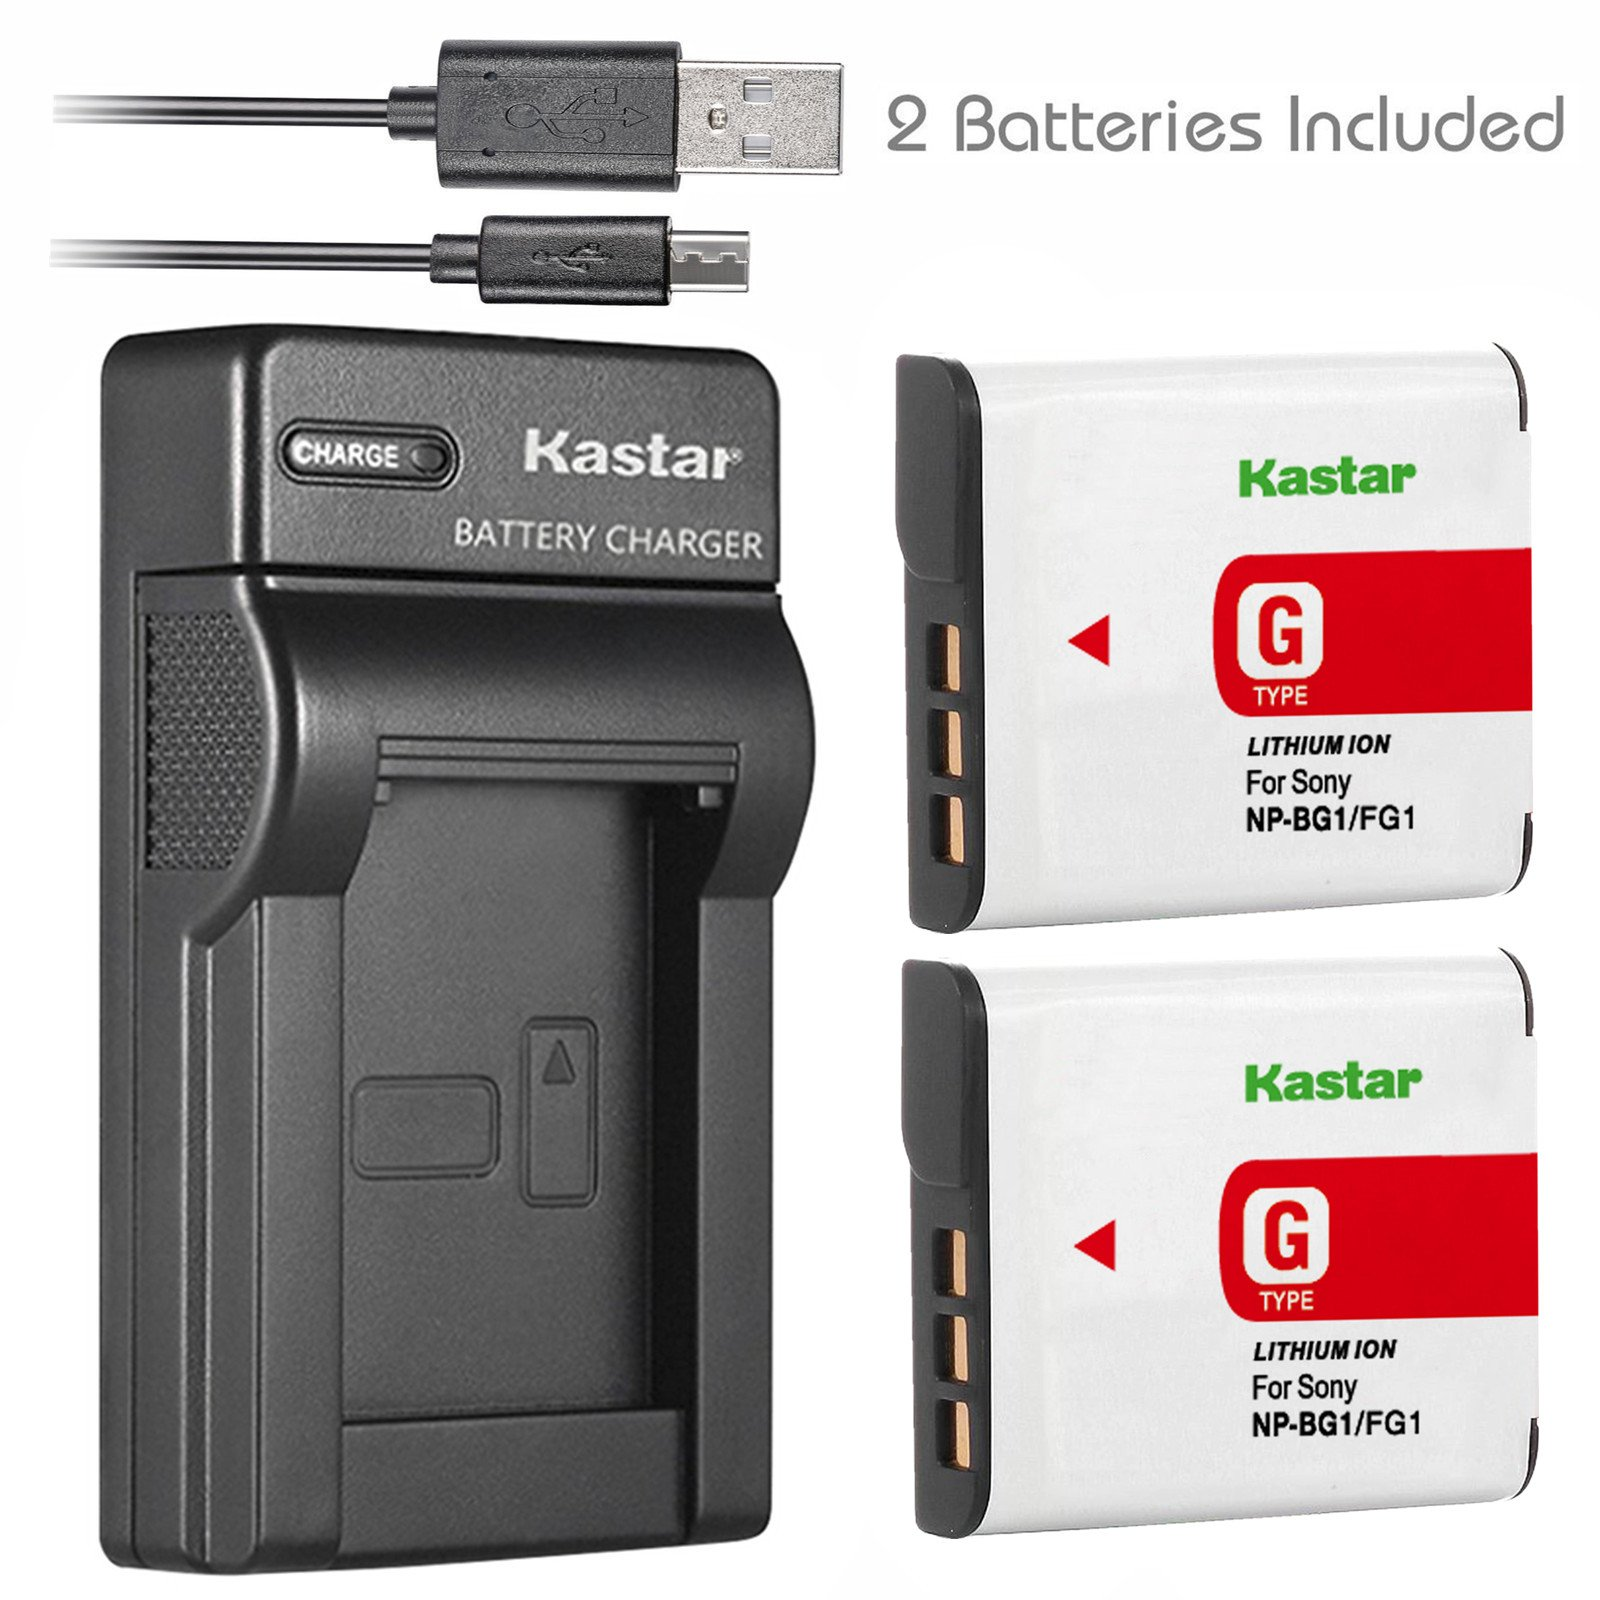 Kastar Battery (X2) & Slim USB Charger for Sony Cybershot DSC-HX5V, DSC-HX9V, DSC-W30, DSC-W35, DSC-W50, DSC-W55, DSC-W70, DSC-W80, DSC-W290, DSC-H10, H20, H50, H55, H70, H90 Battery+ More Cameras